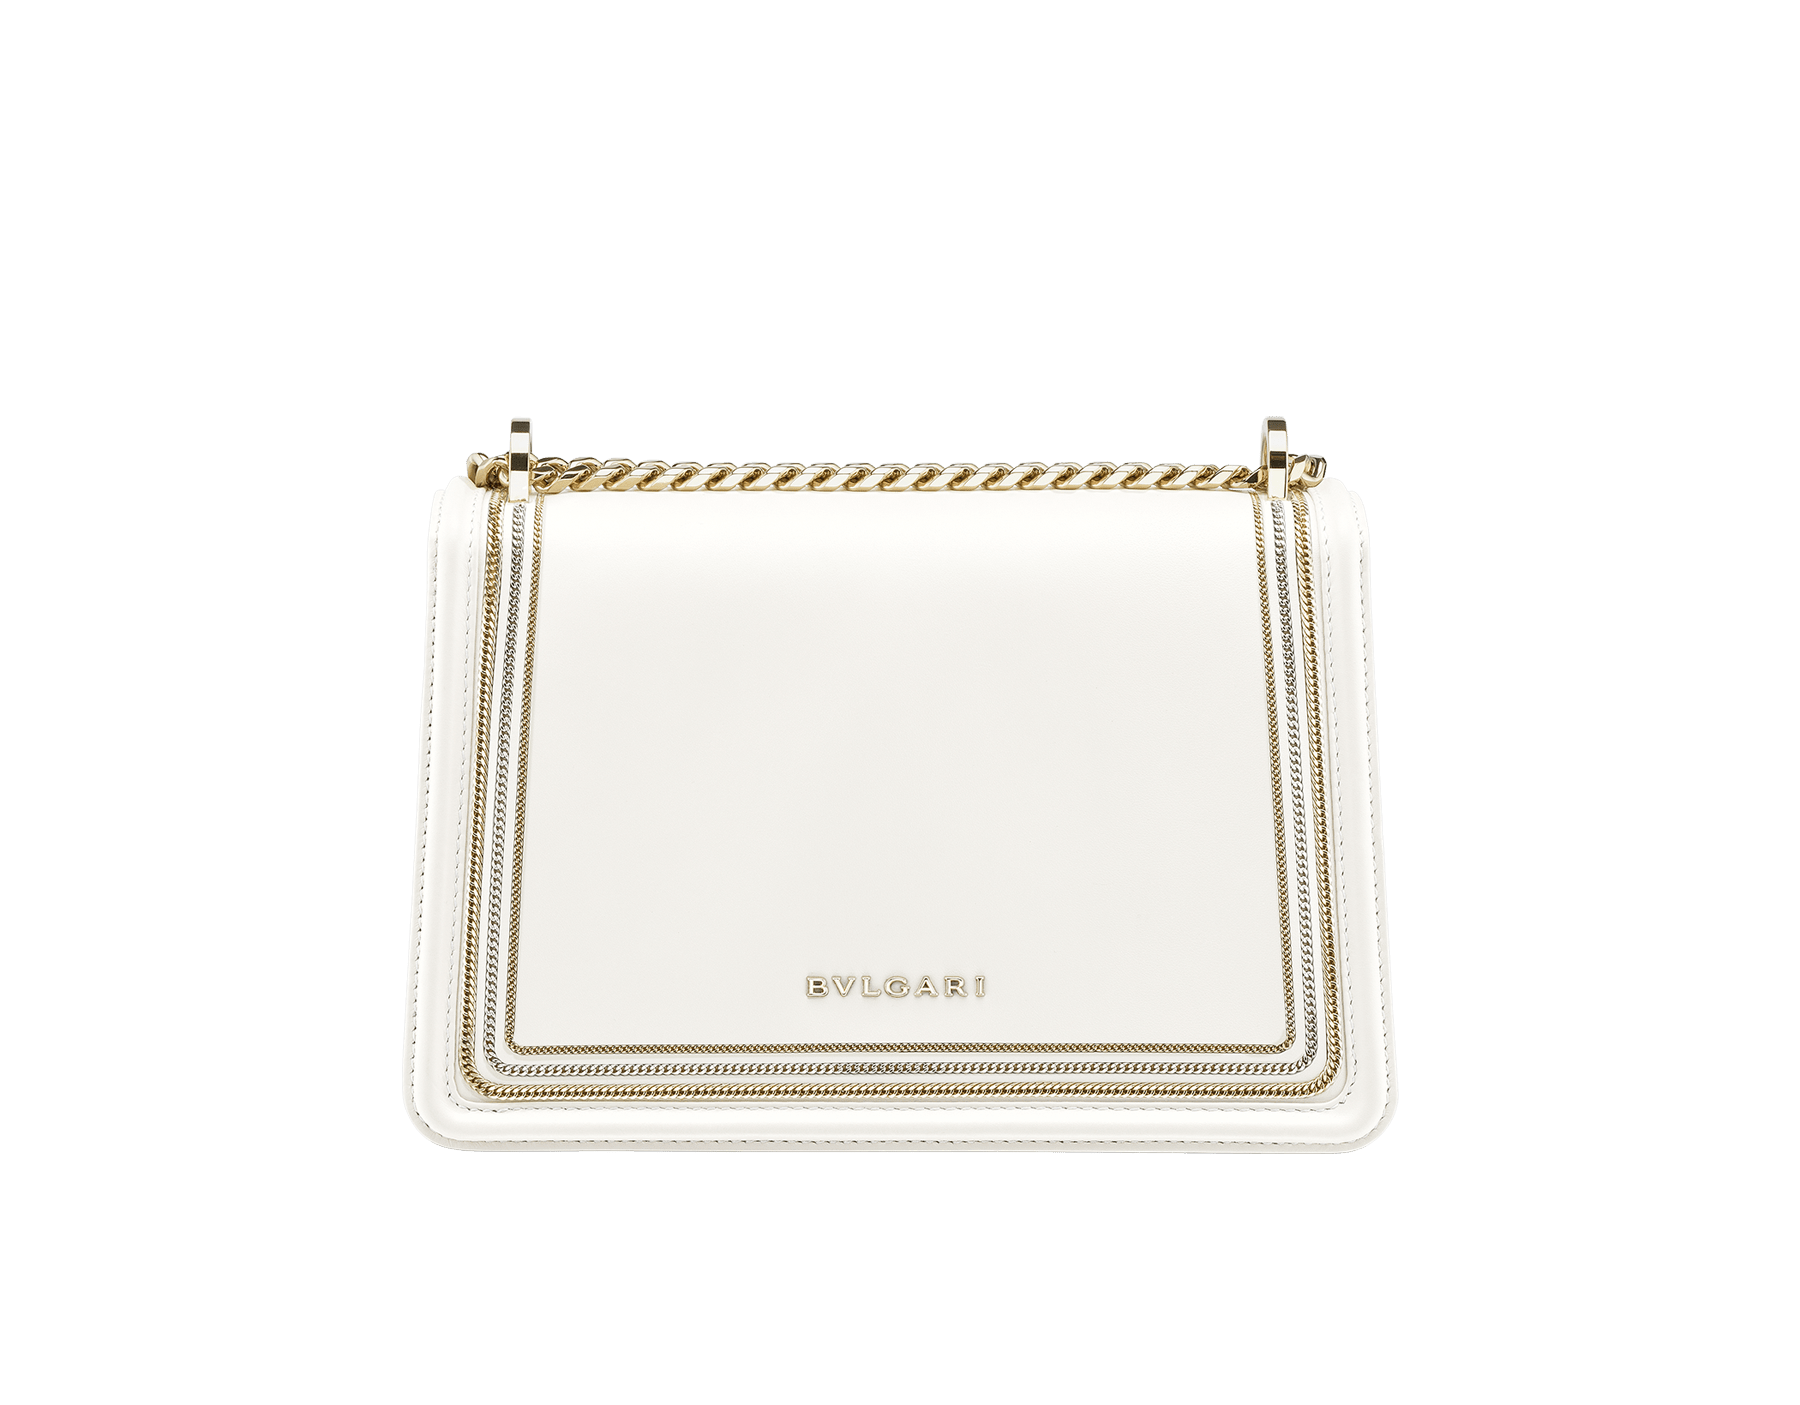 """""""Serpenti Diamond Blast"""" shoulder bag in black smooth calf leather, featuring a 3-Chain motif in light gold and palladium finishing. Iconic snakehead closure in light gold plated brass enriched with black and white enamel and black onyx eyes 922-3CFCL image 3"""